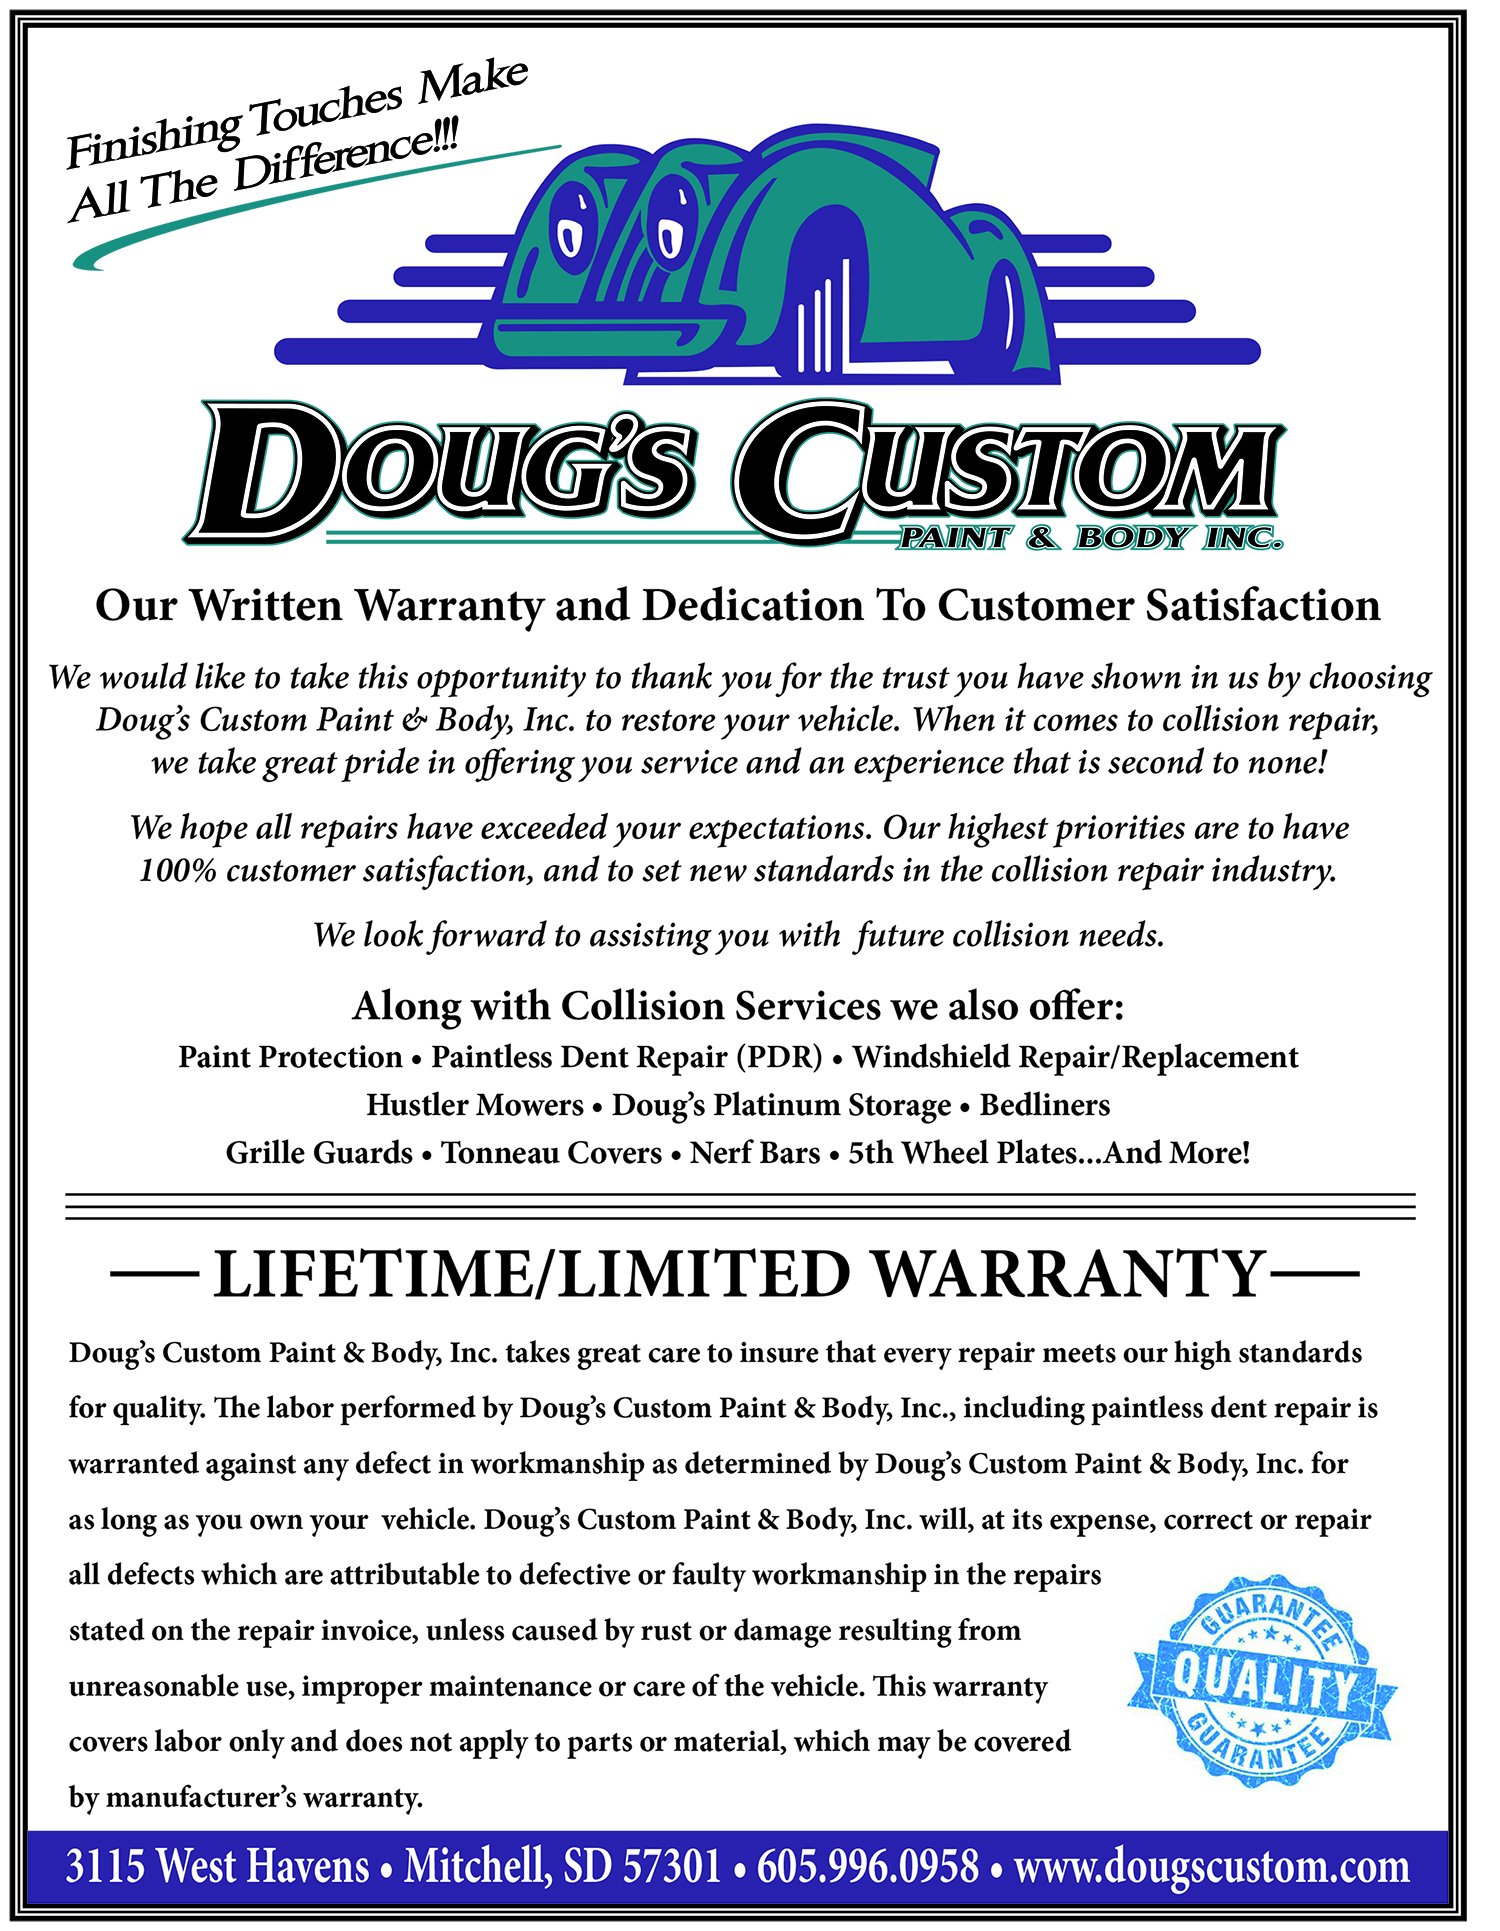 Dougs Custom Warranty